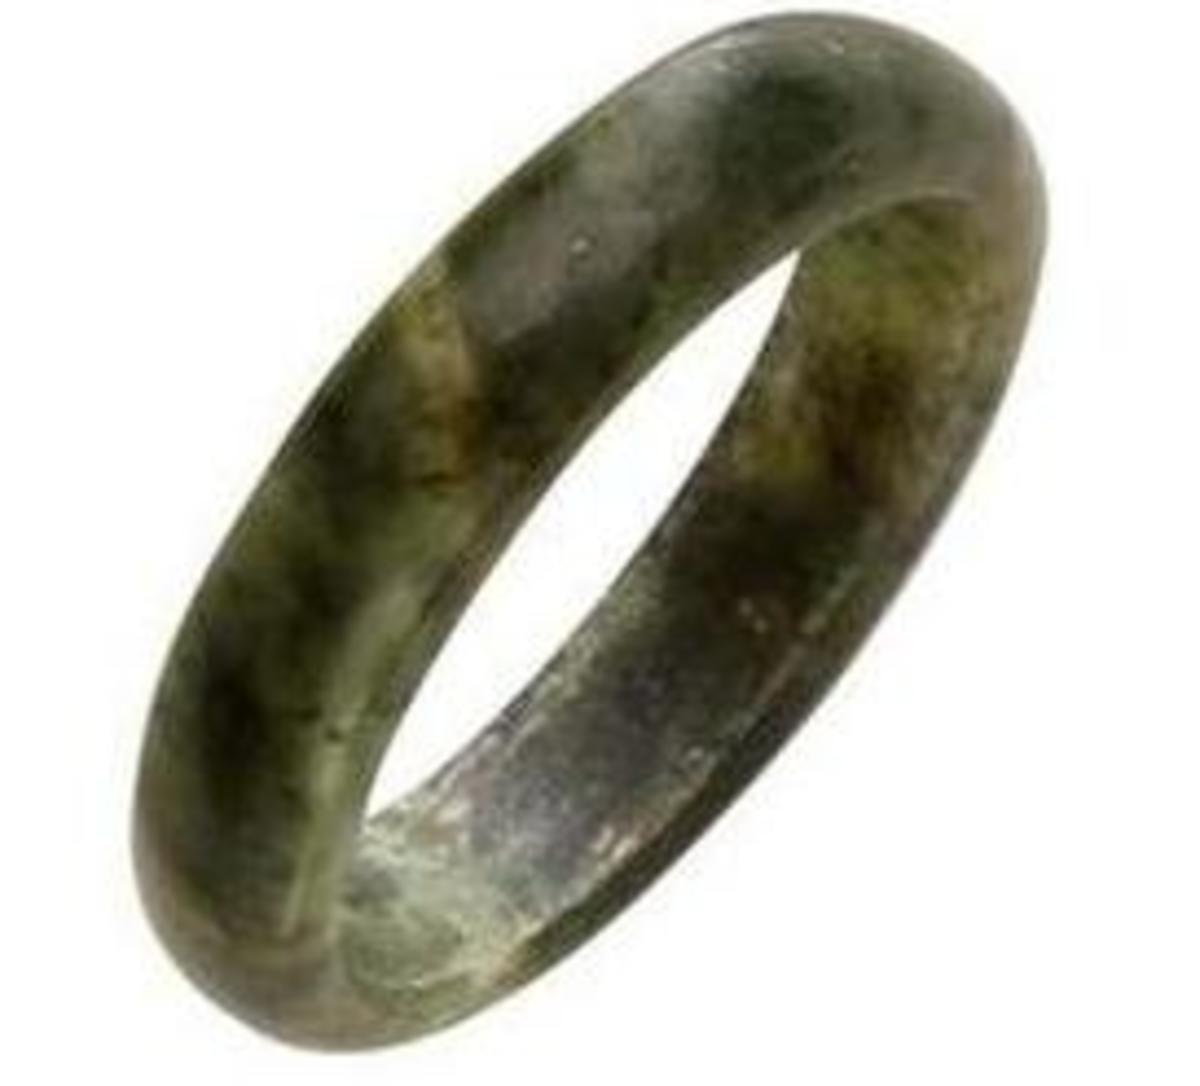 Black Jade & Dark Jade: Meaning & Buy Jewelry Online